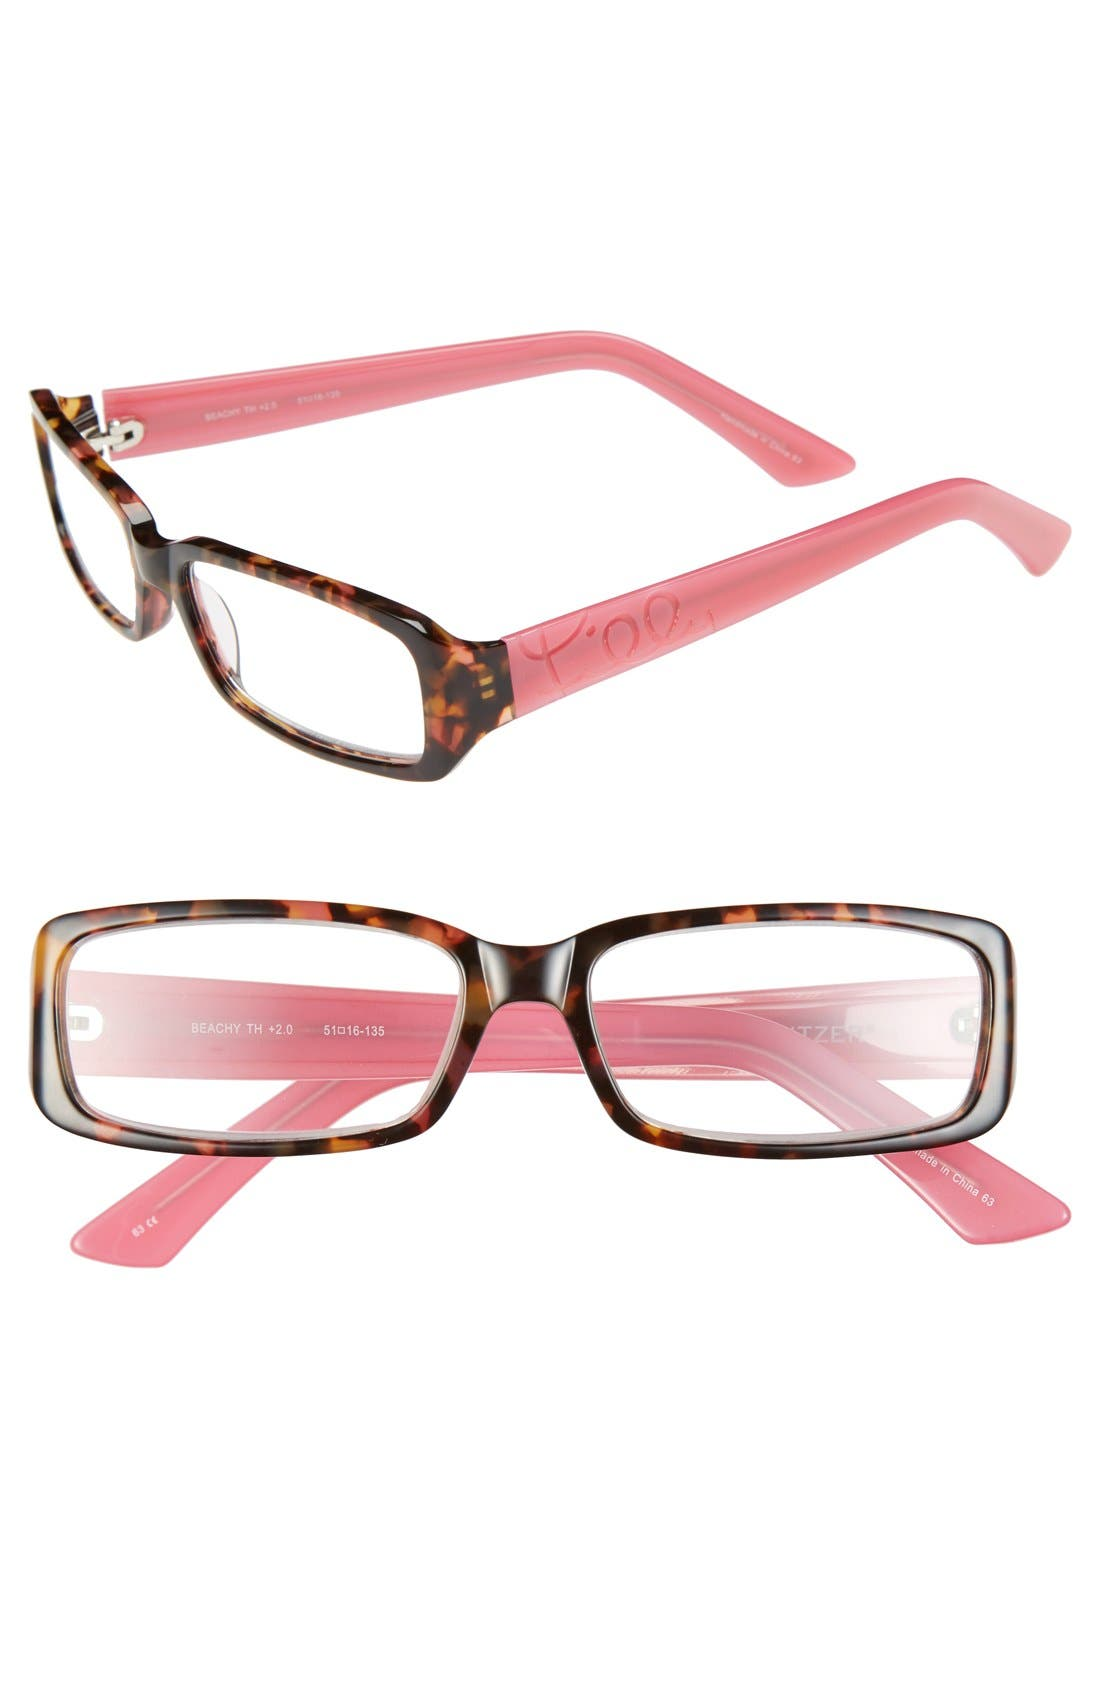 Main Image - Lilly Pulitzer® 'Beachy' 51mm Reading Glasses